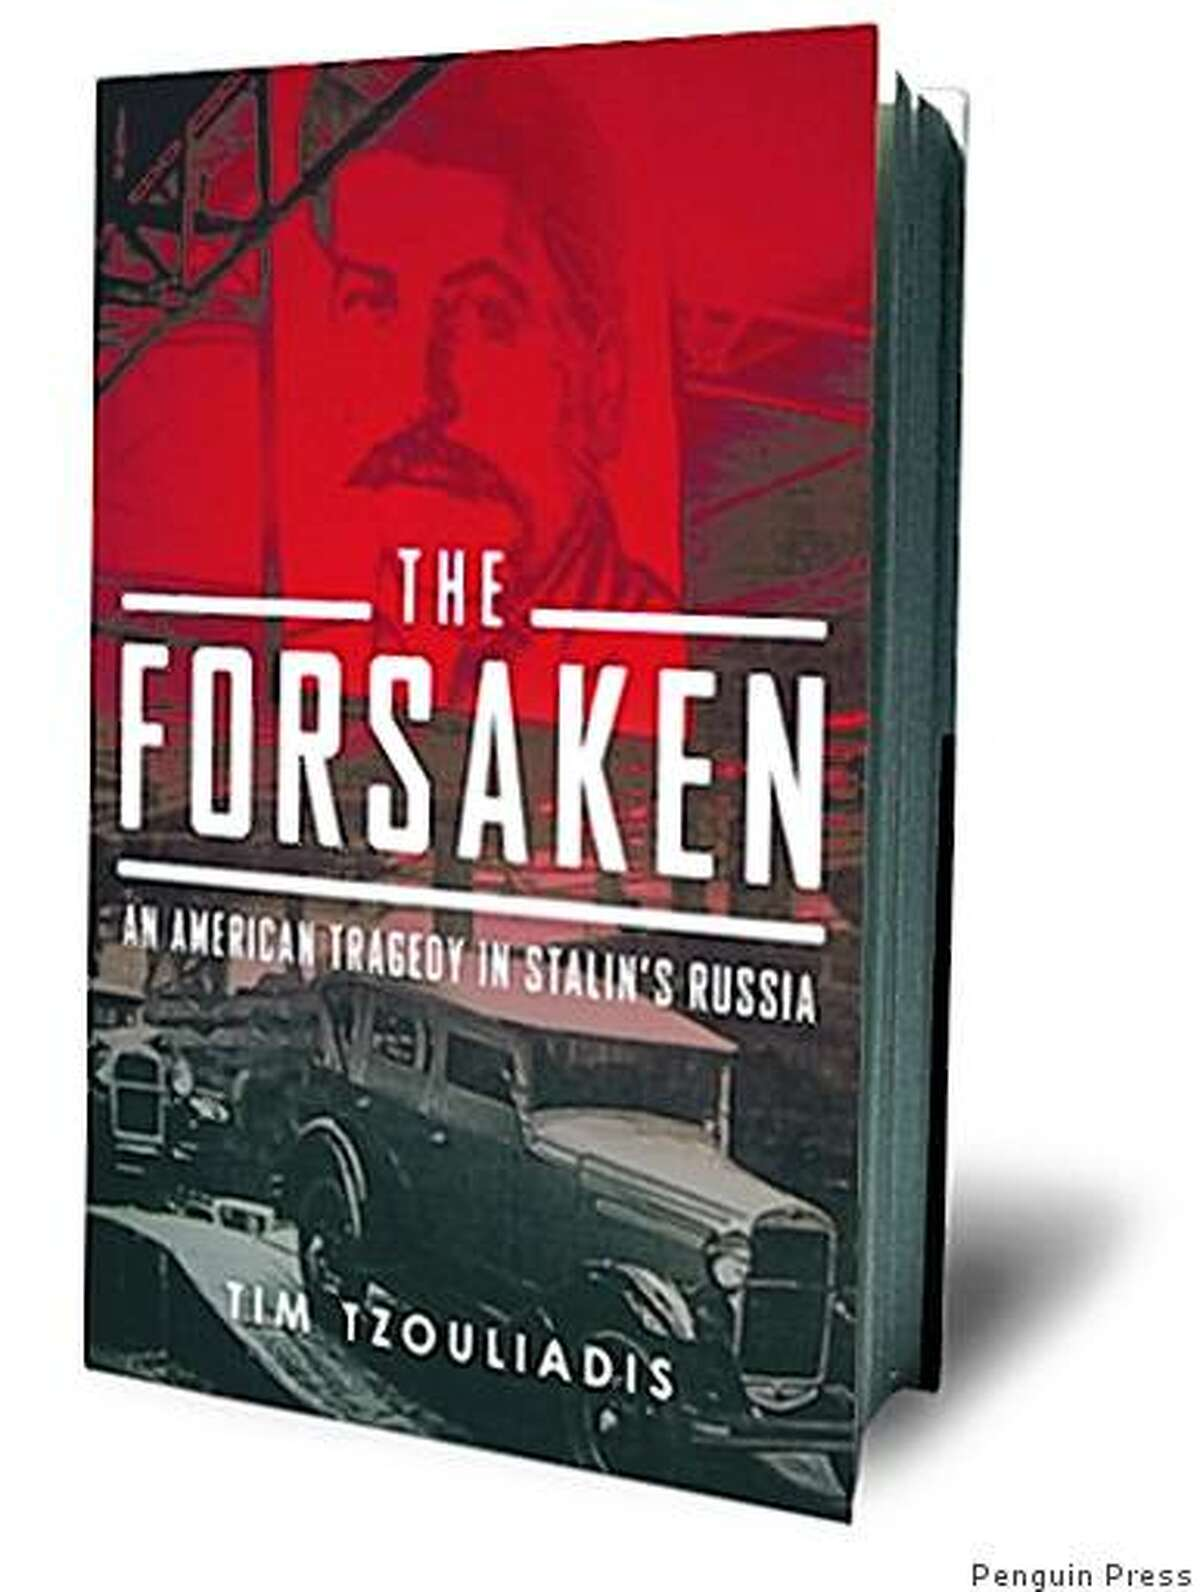 The Forsaken: An American Tragedy in Stalin's Russia by Tim Tzouliadis